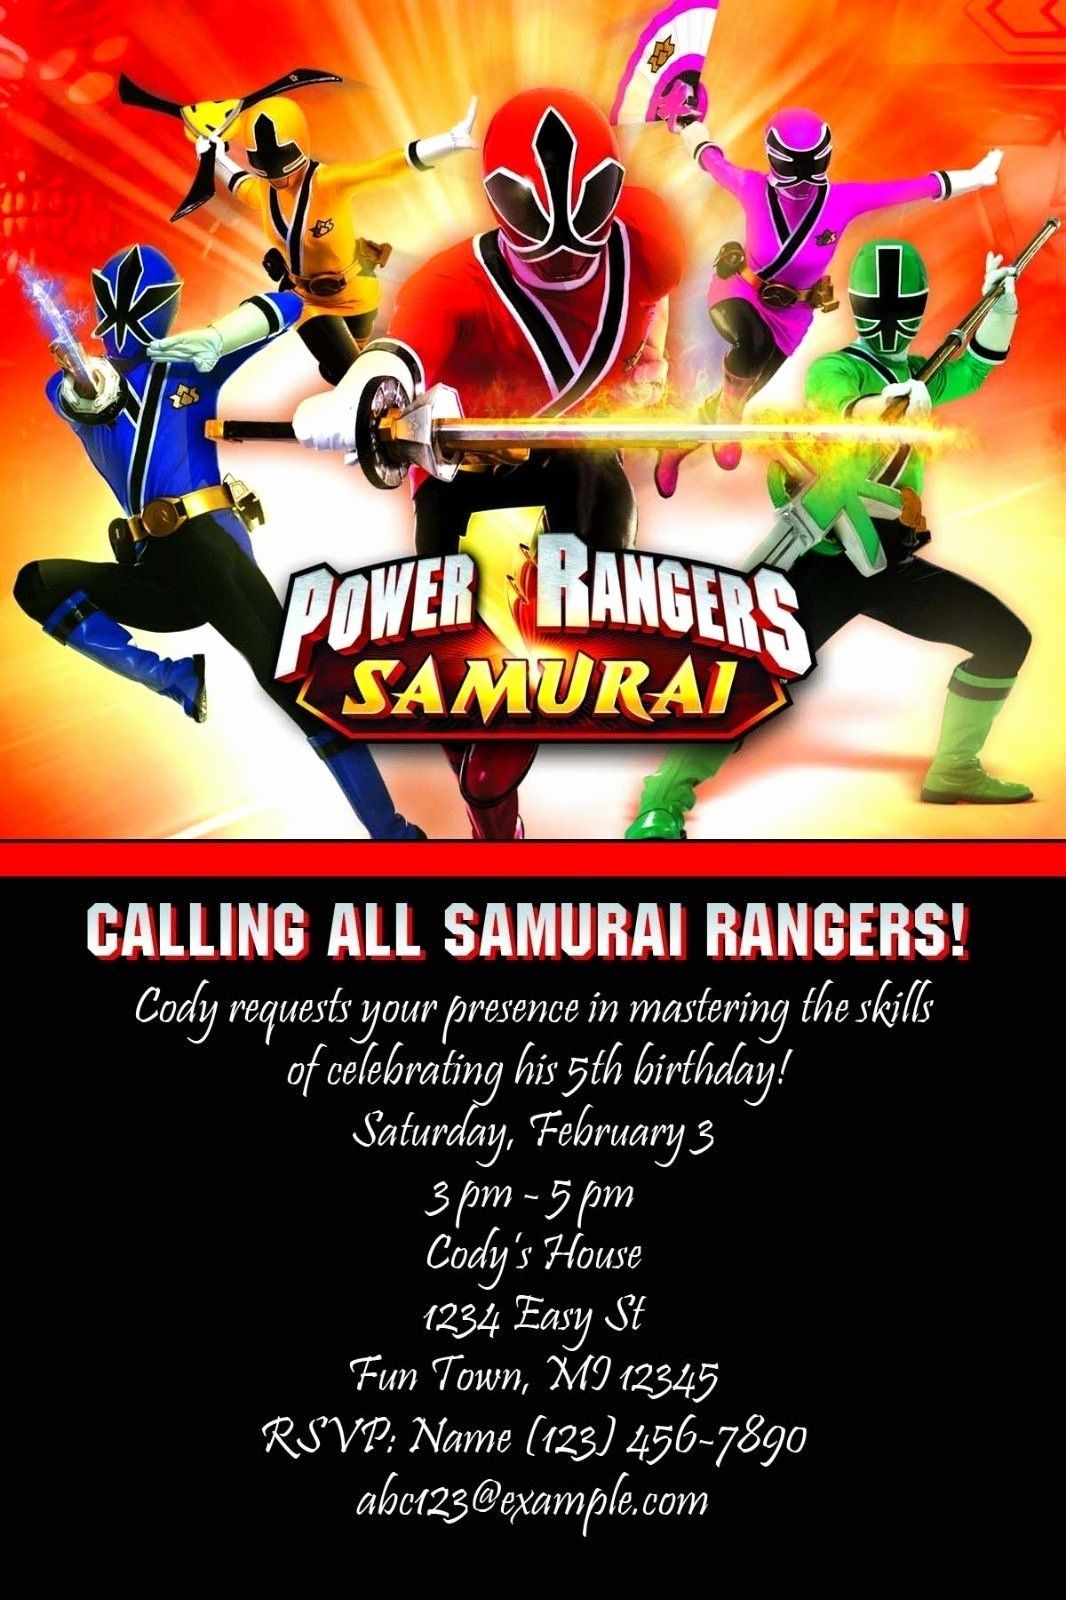 Power Rangers Birthday Invitations Awesome Printable Power Rangers Birthday Invitat Power Ranger Birthday Power Rangers Invitations Power Ranger Birthday Party